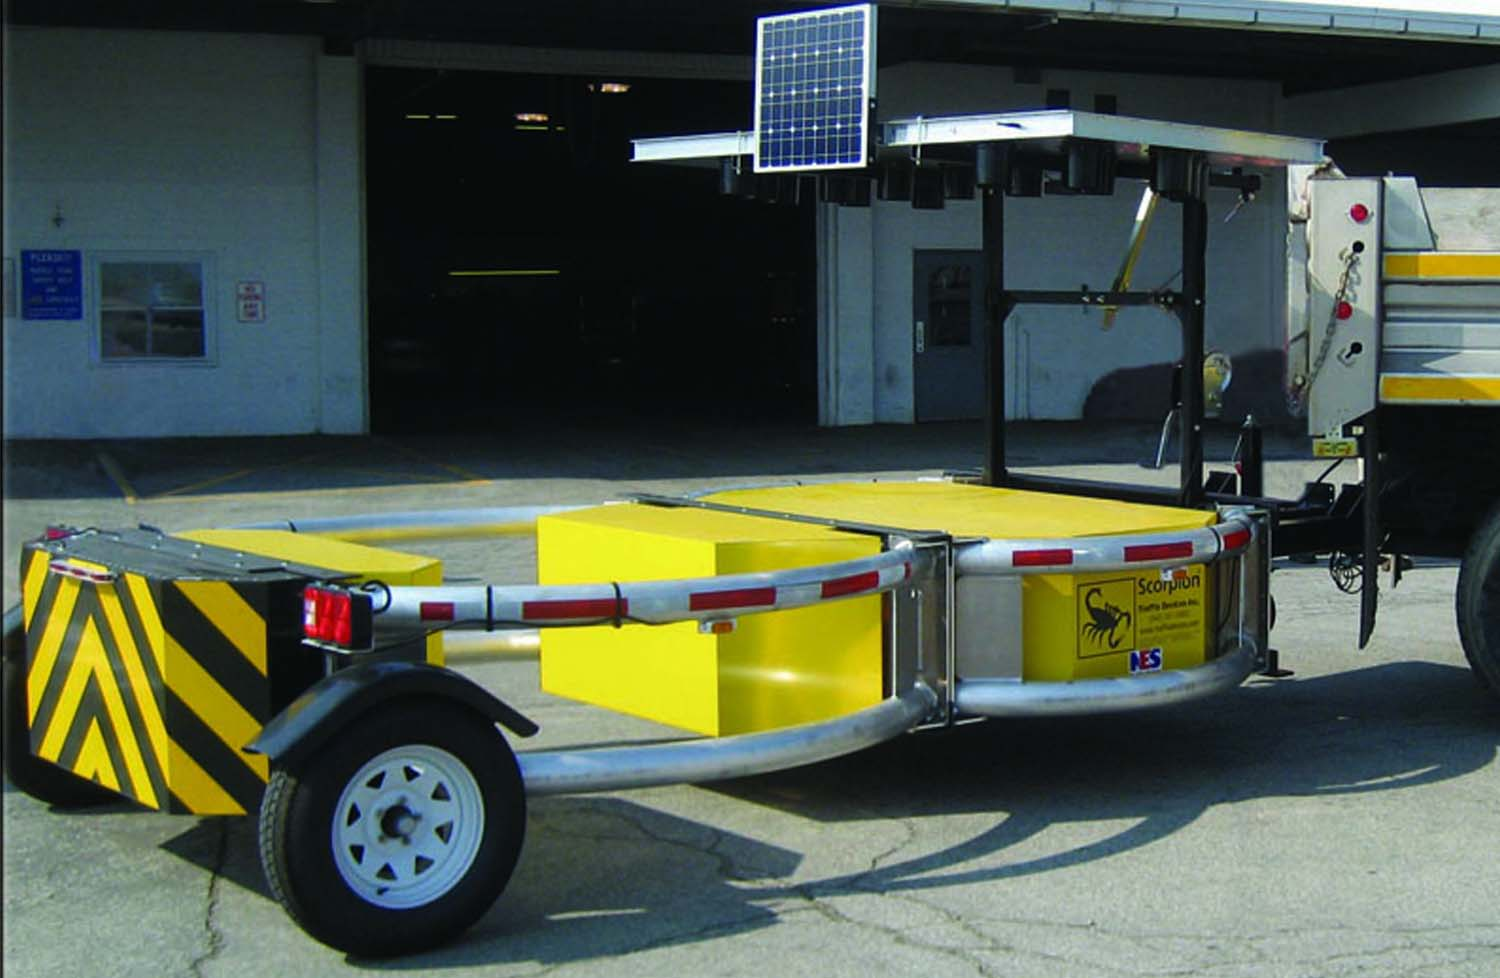 Bird-Dog-Traffic-Control-Equipment-Rentals-Scorpion-Trailer-Attenuator